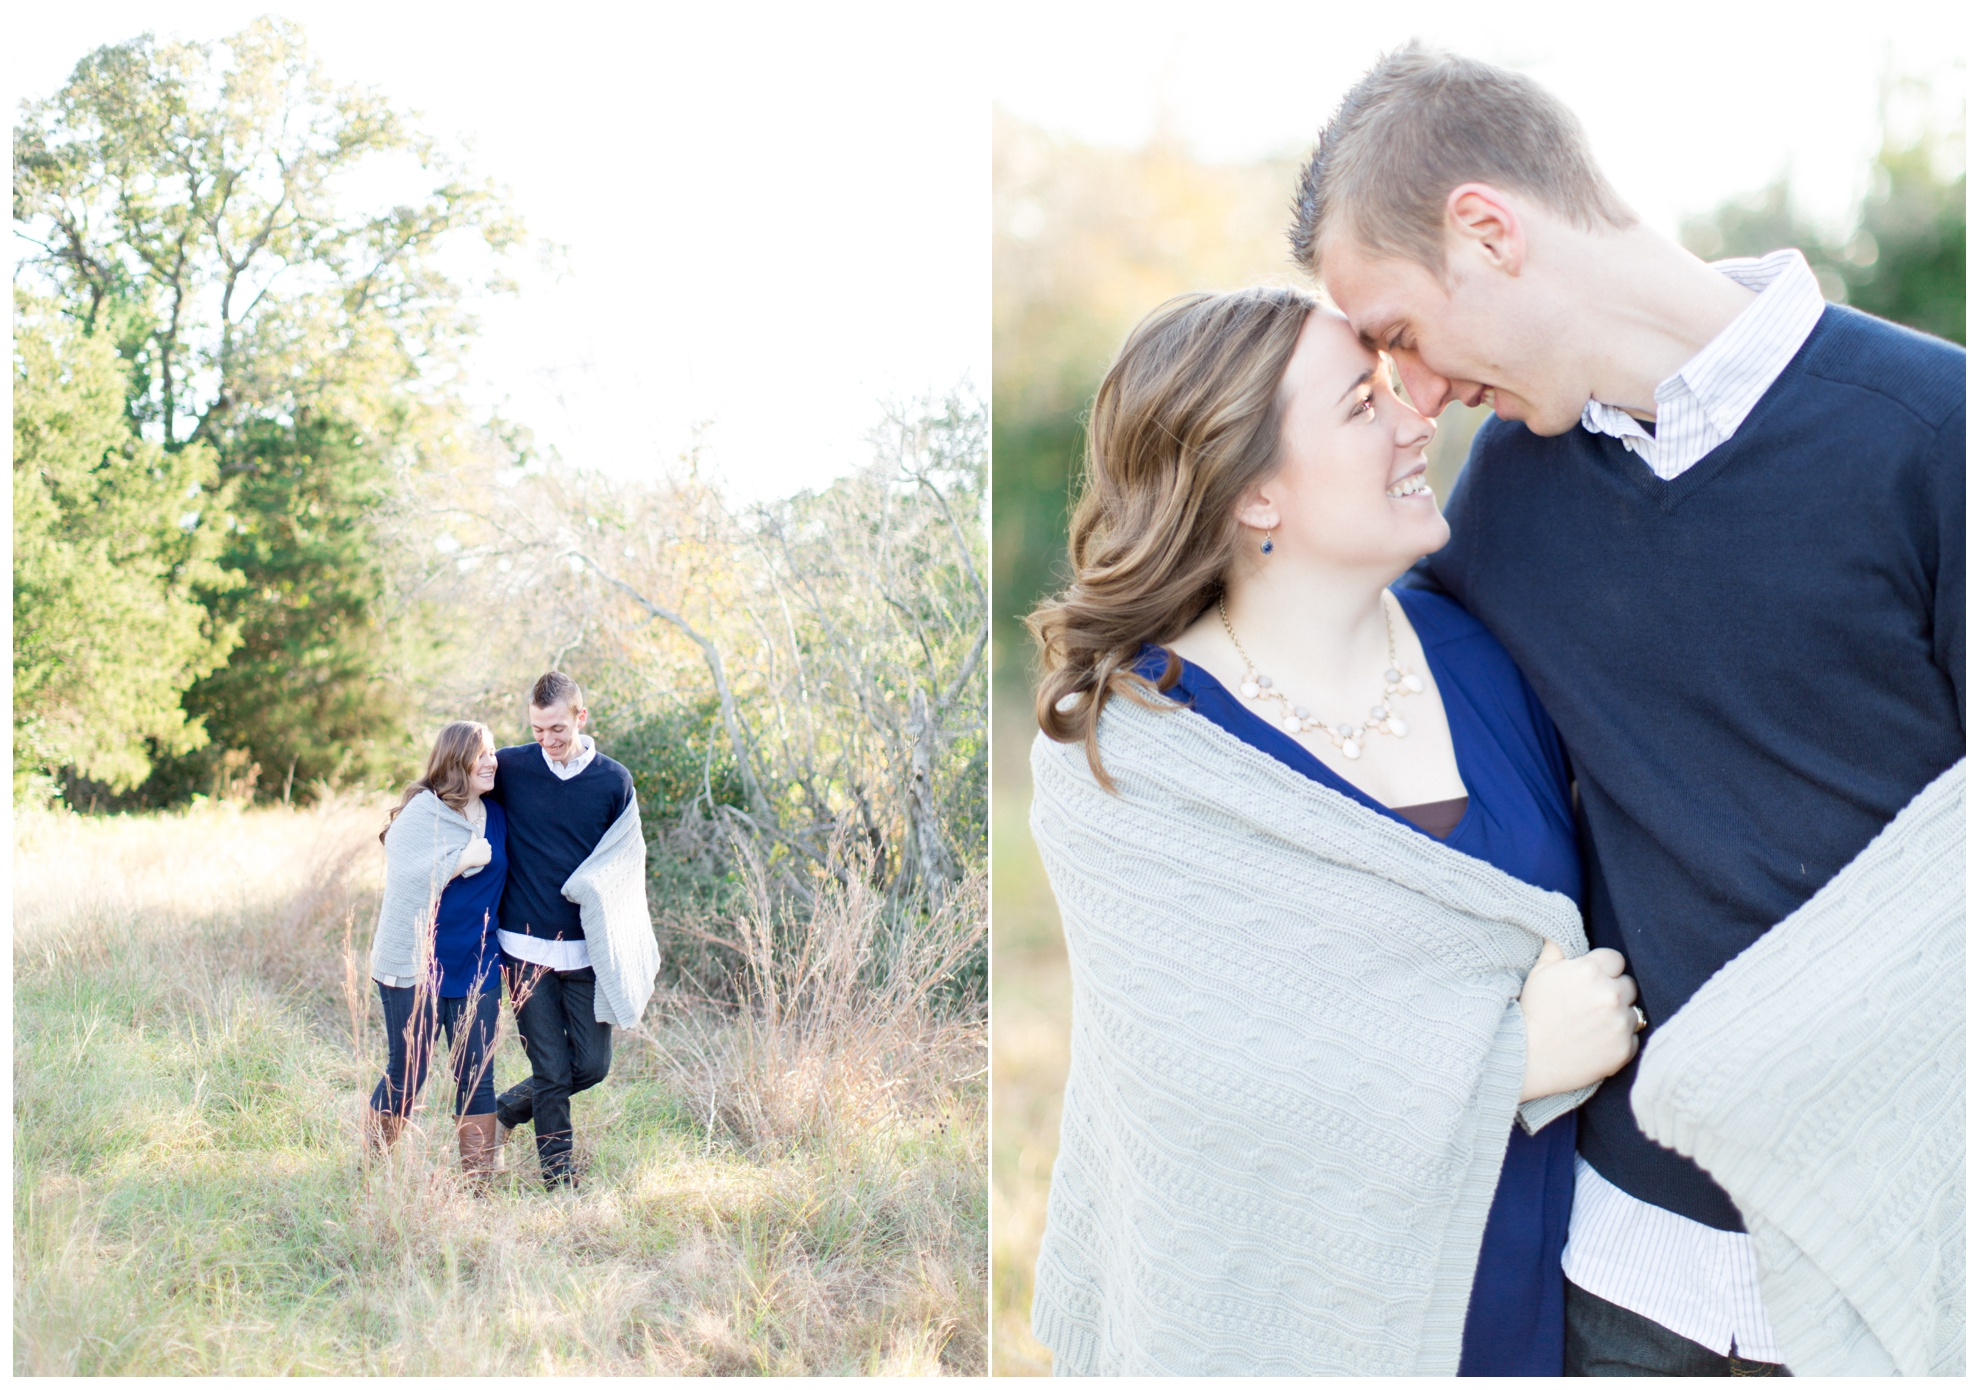 Sarah Best Photography - Claire & David - Engagement Photography-1_STP.jpg